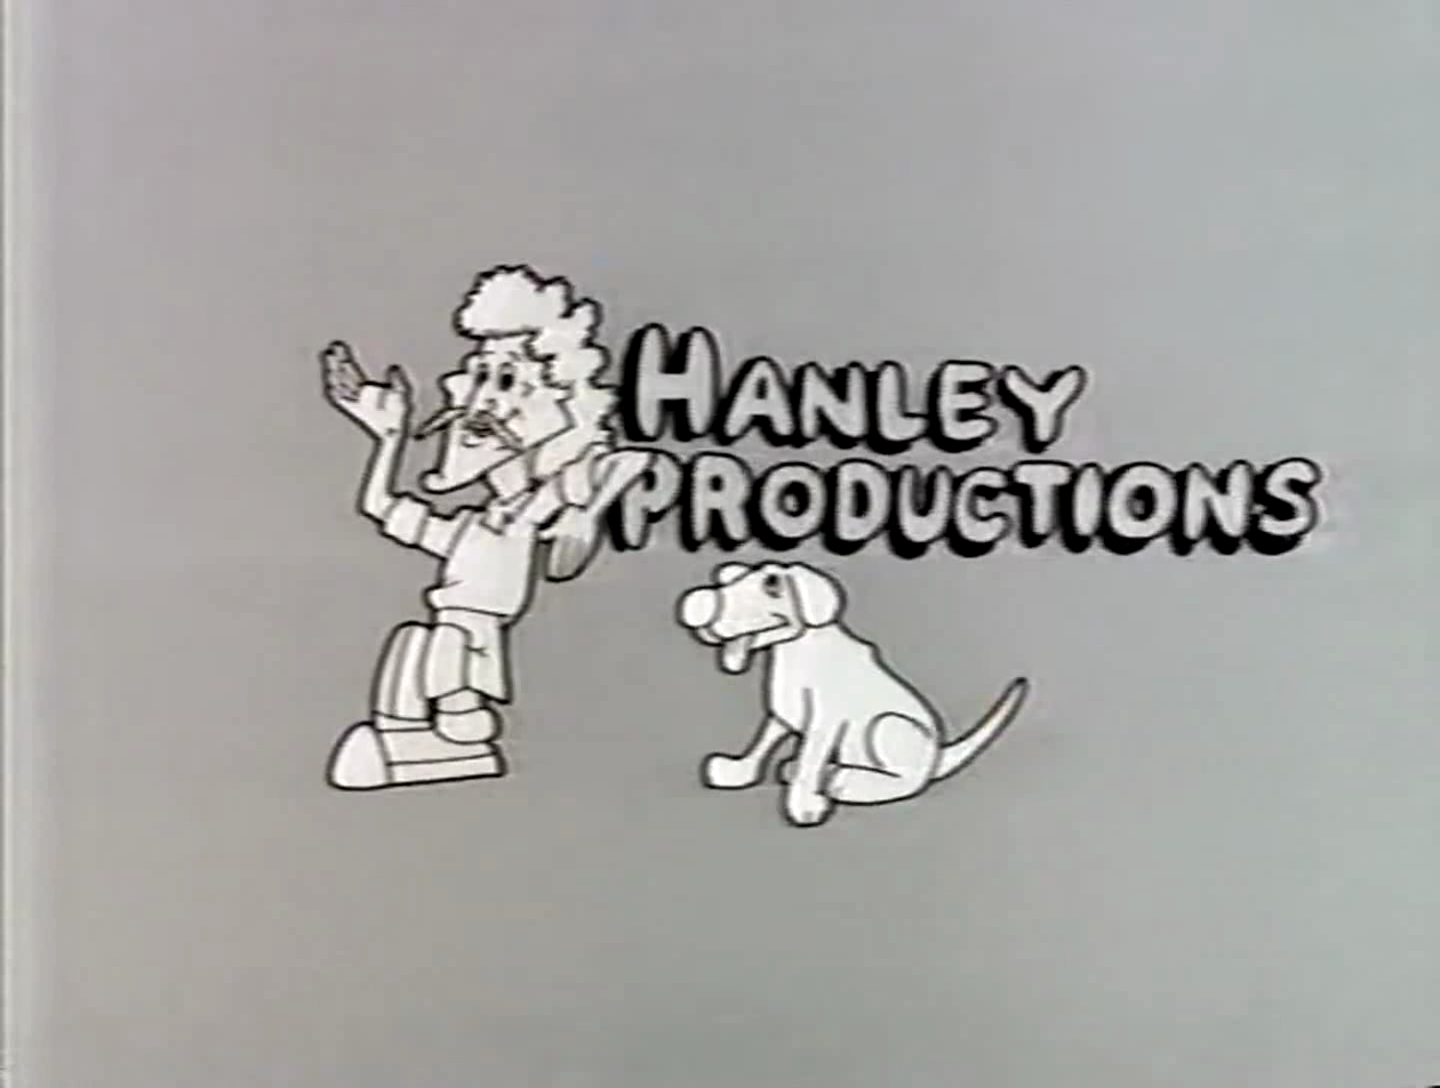 Hanley Productions